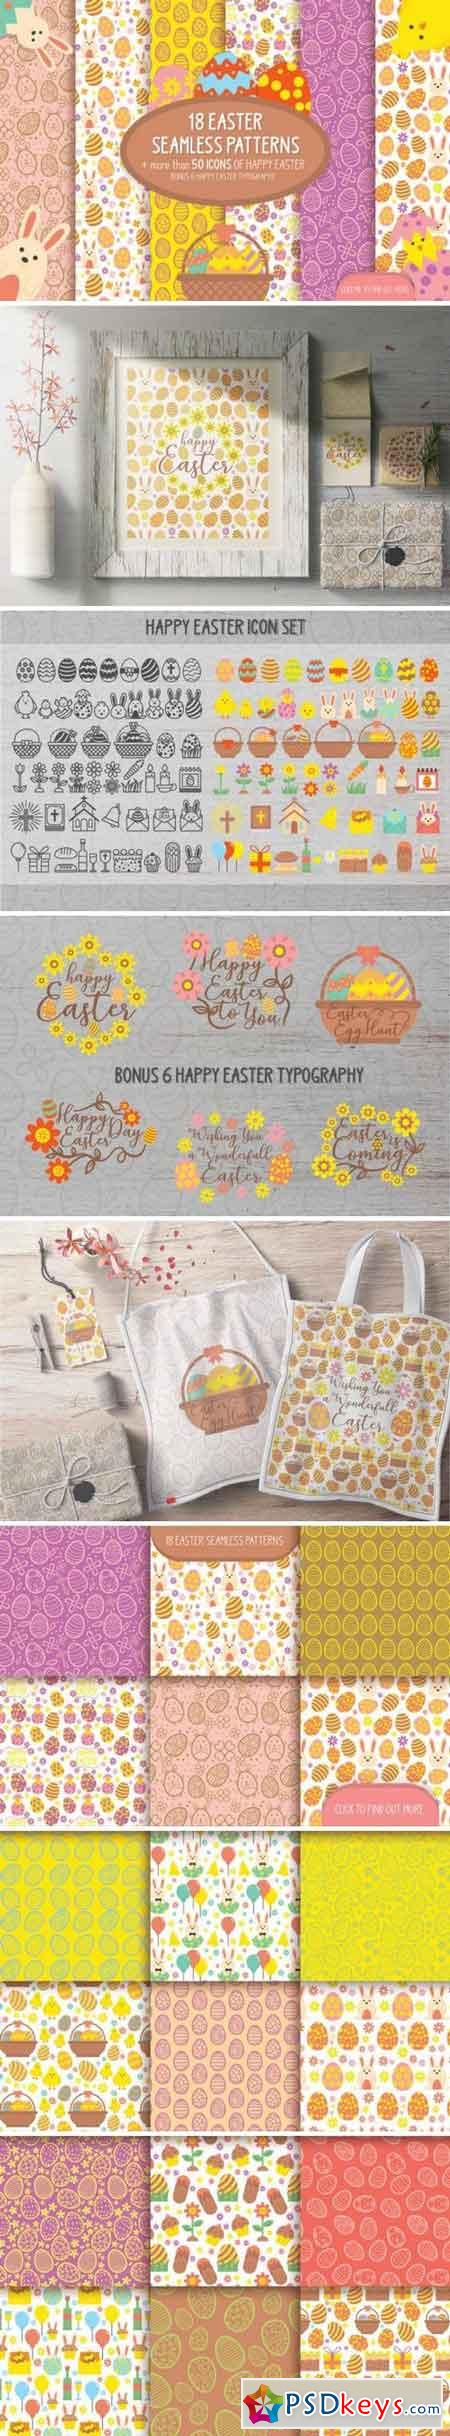 18 Easter seamless patterns & icons 2369644